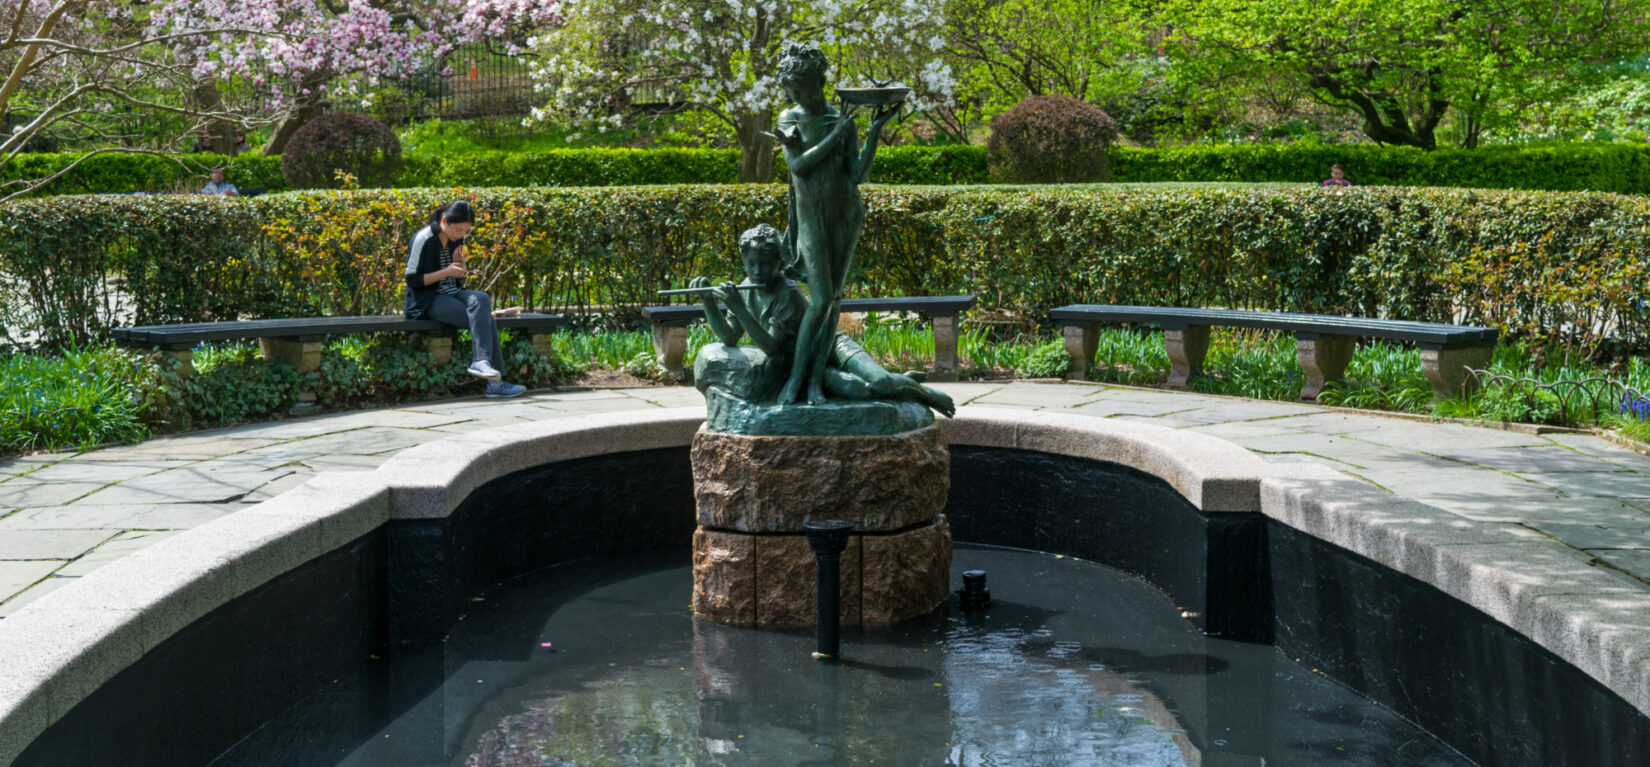 Benches provide a restful view of the fountain